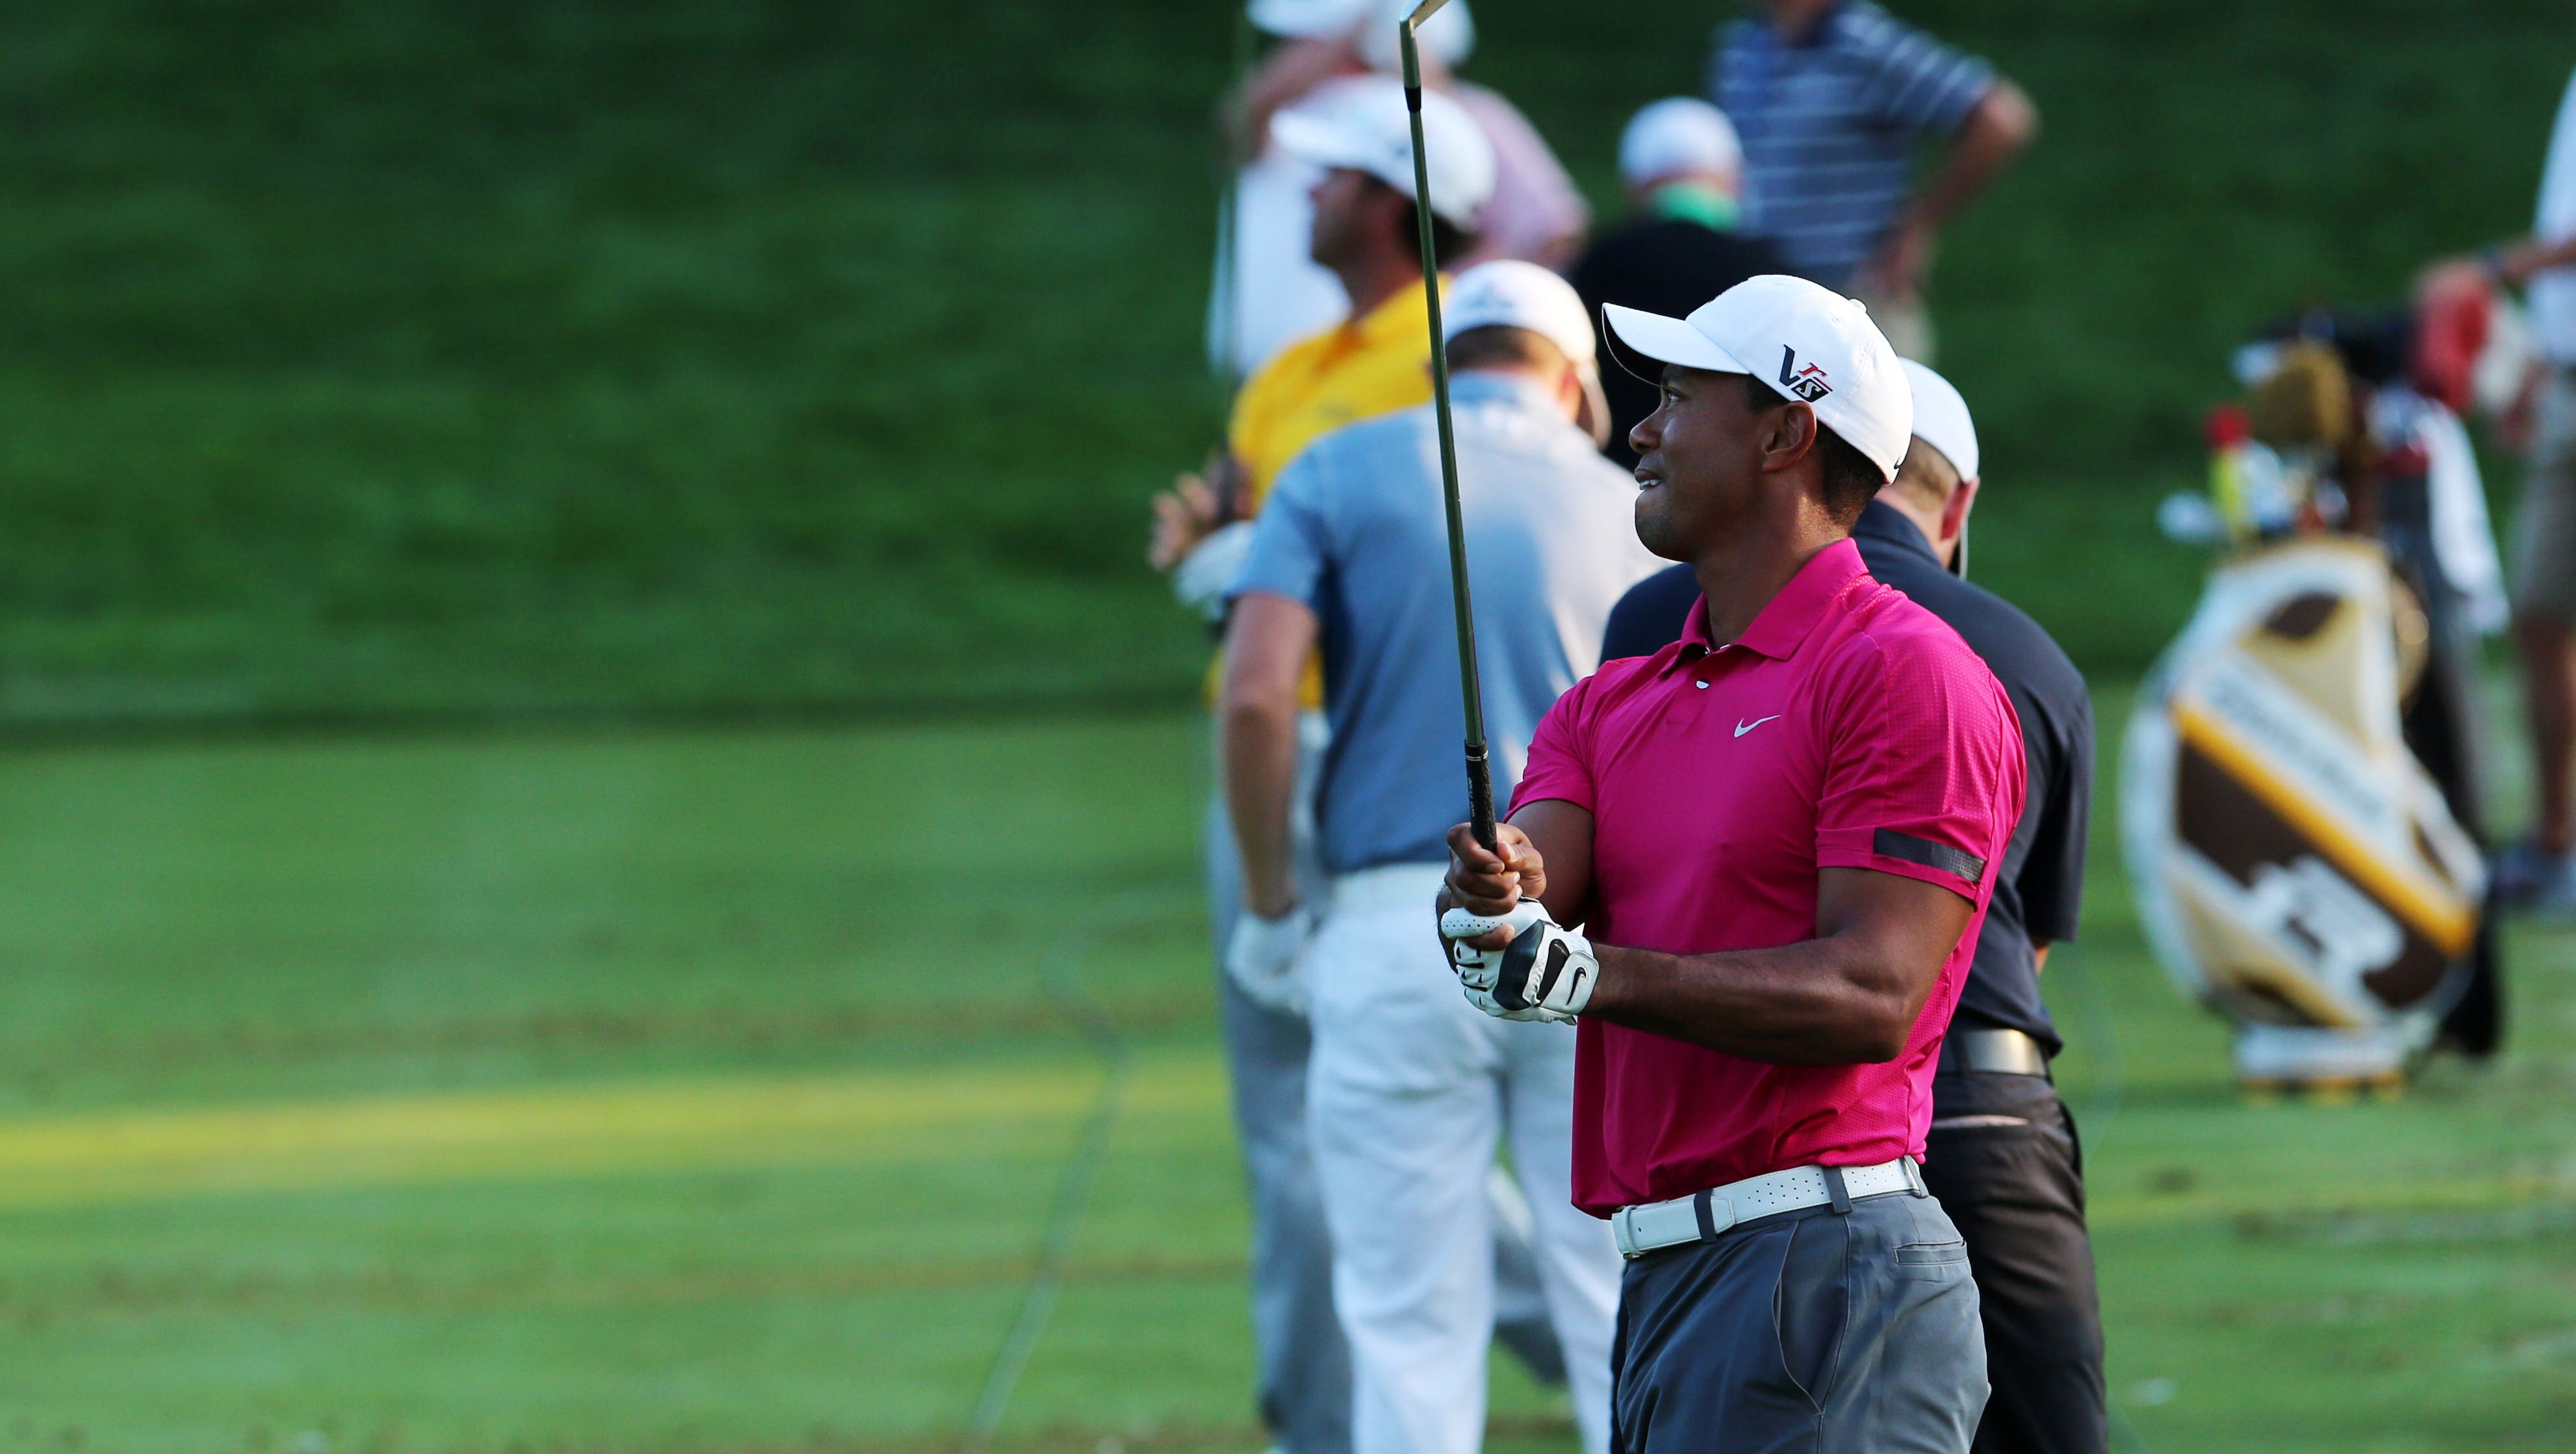 Tiger Woods practice on the practice range during the practice round of the 95th PGA Championship at Oak Hill Country Club.